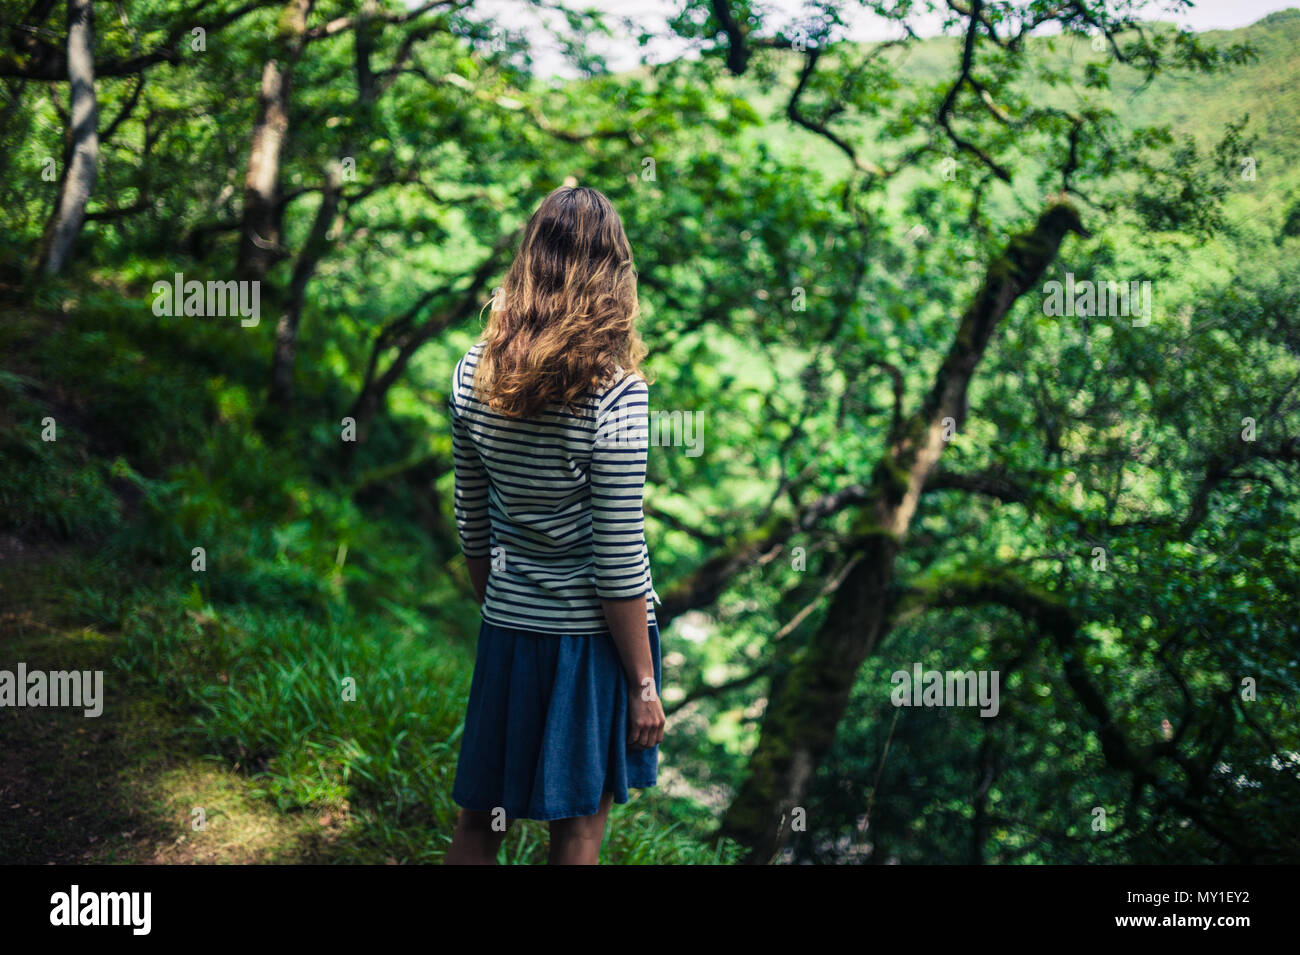 A young woman is standing in the forest on a summer day - Stock Image